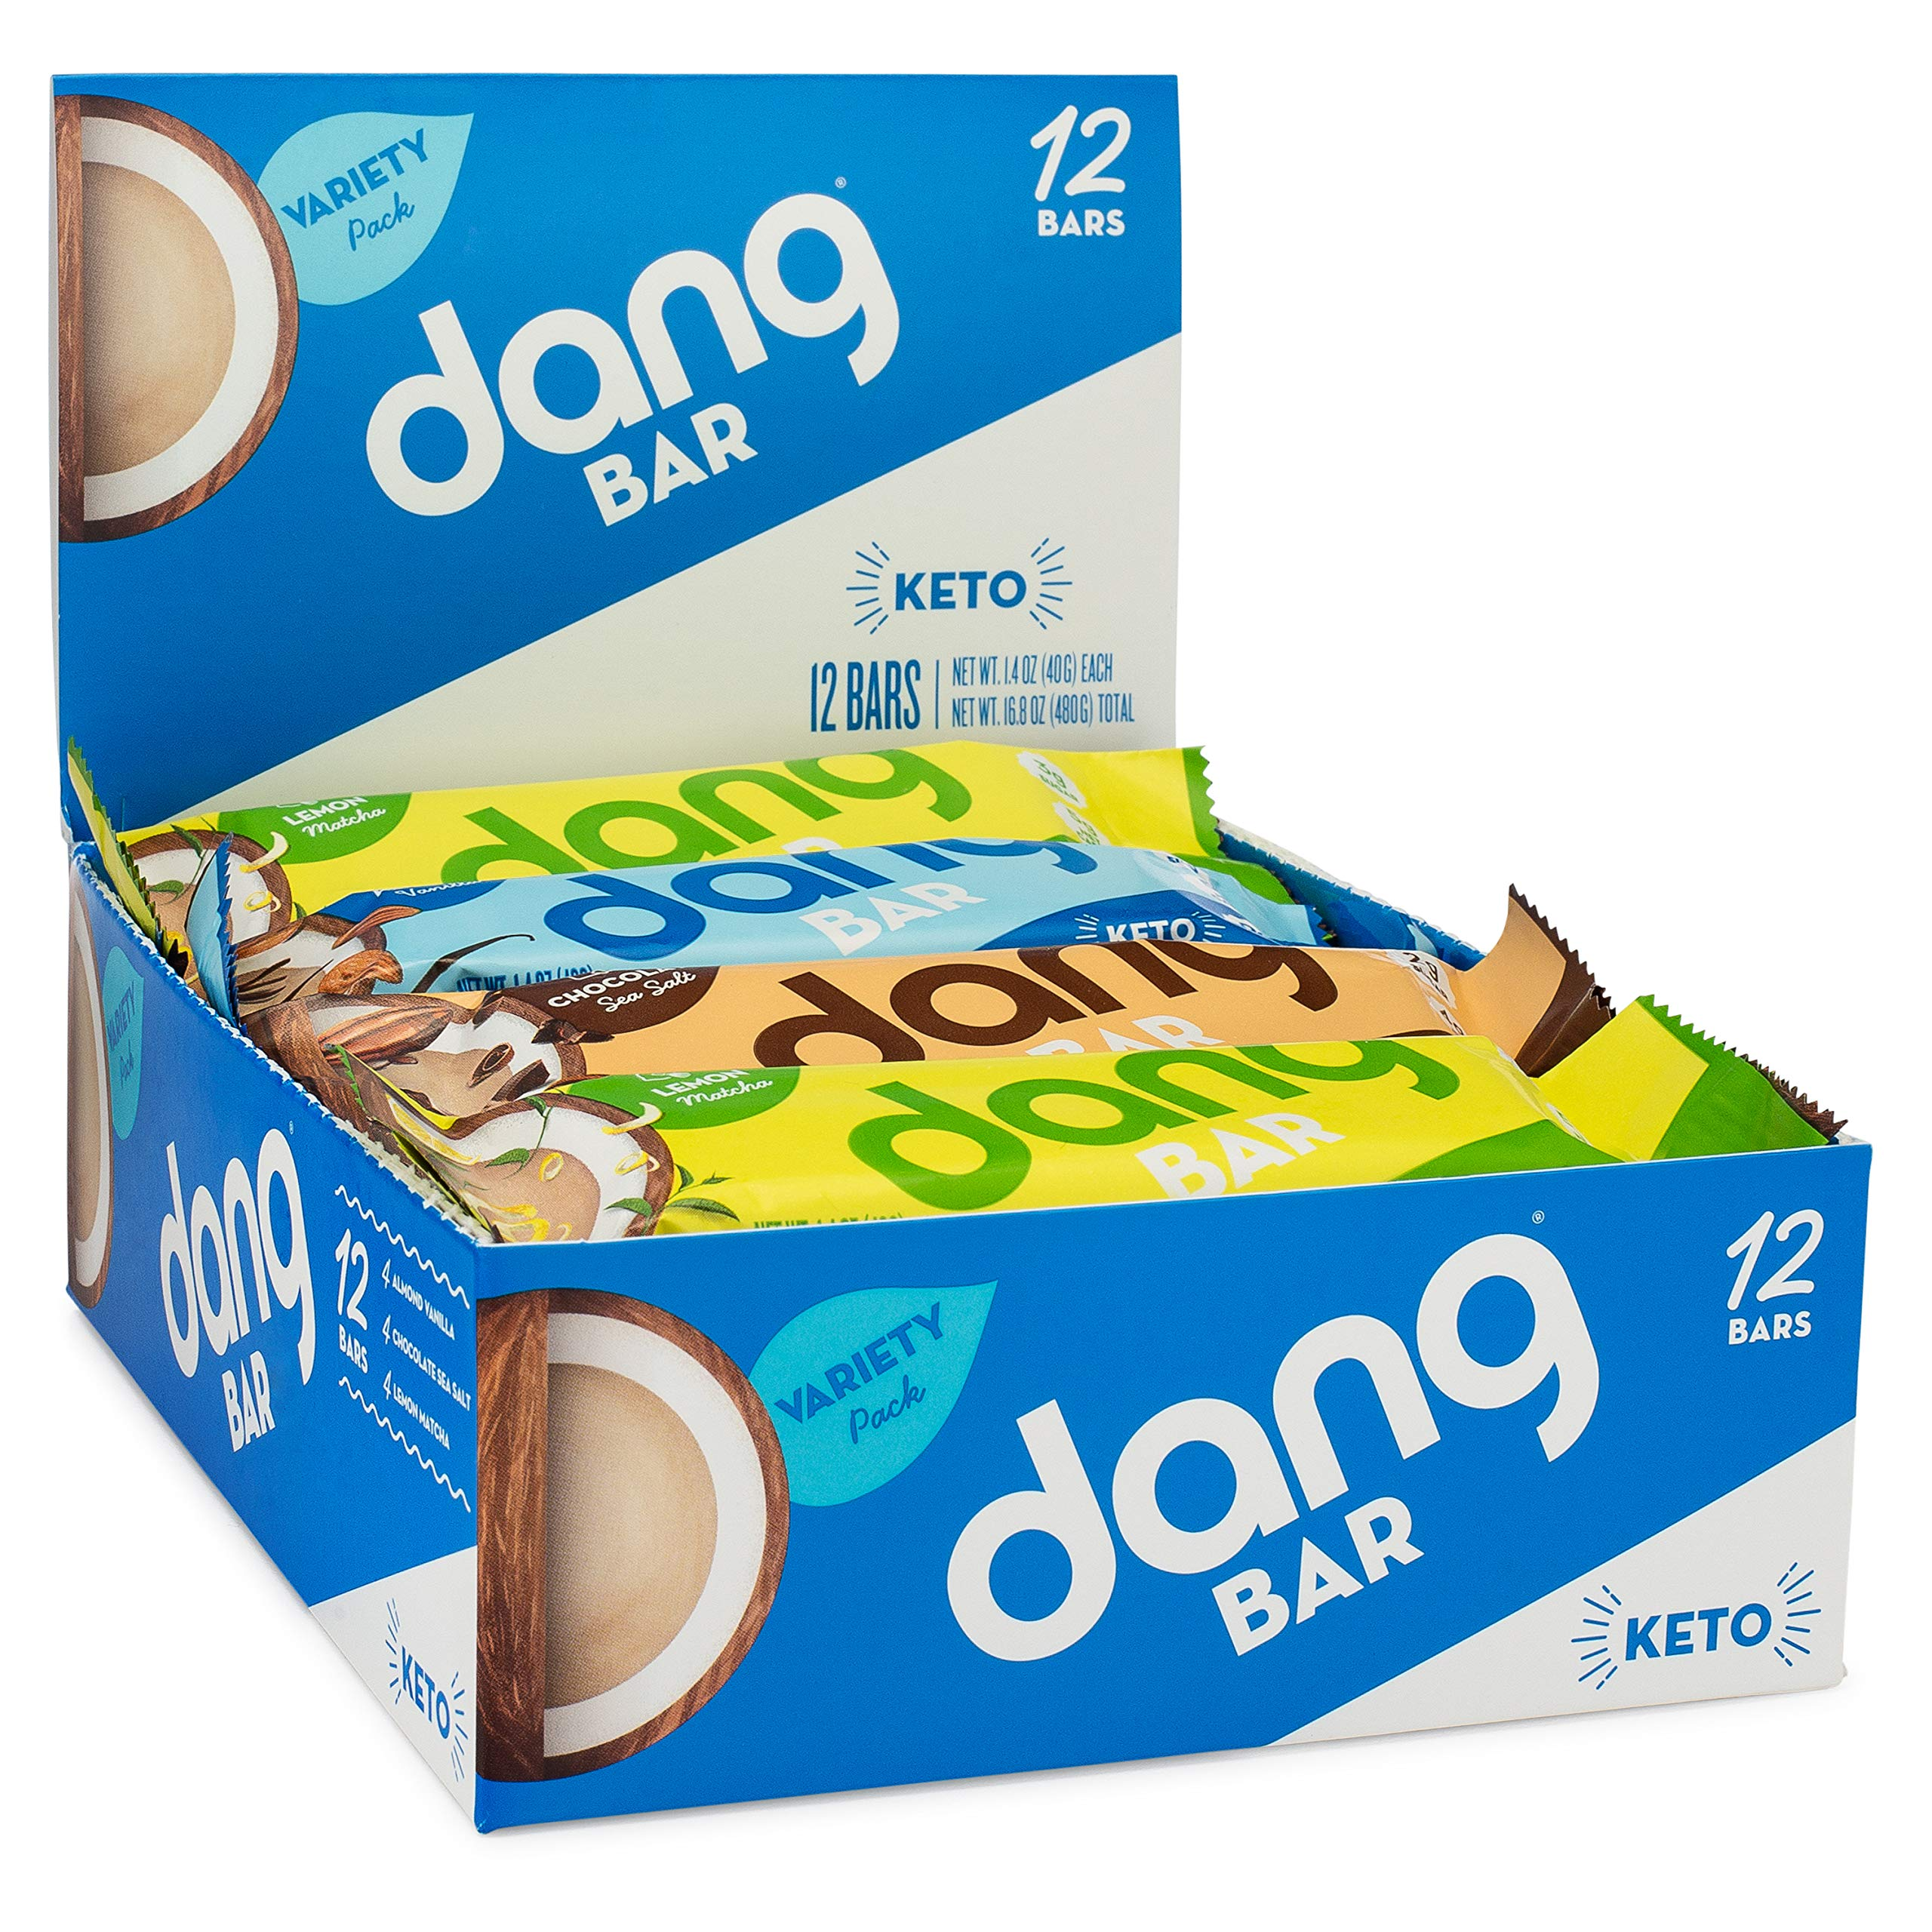 Dang Bar - KETO CERTIFIED, Low Carb, Plant Based, Gluten Free, Real Food Snack Bar, 2-3g Sugar, 4-5g Net Carbs, No Sugar Alcohols or Artificial Sweeteners, 12 Count (3 Flavor Variety Pack) by DANG